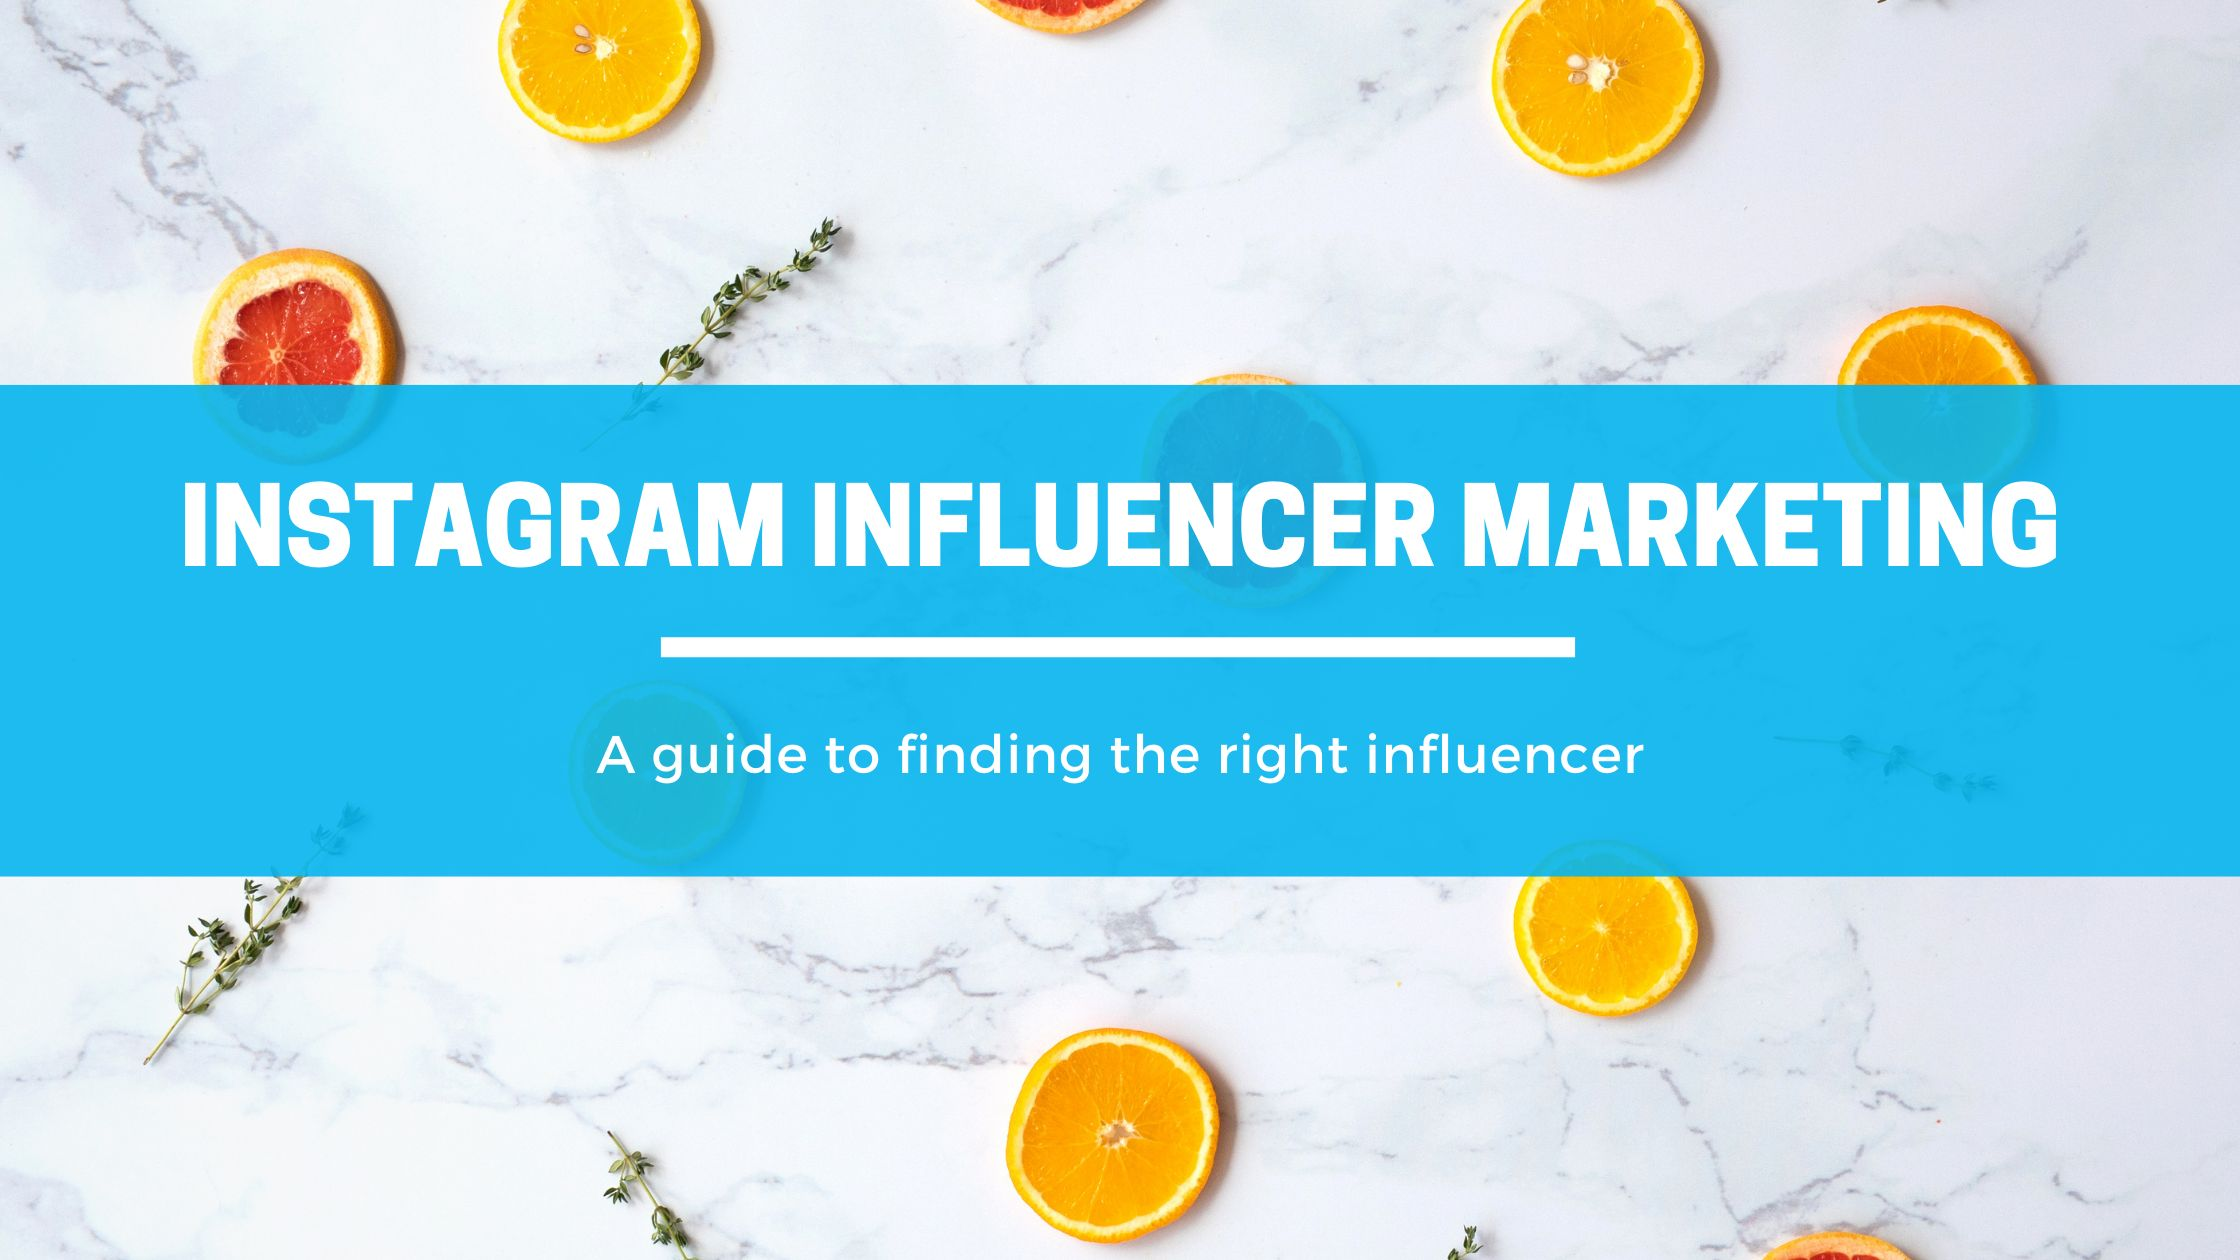 /instagram-influencer-marketing-the-nuts-and-bolts-of-it-u9383wgc feature image